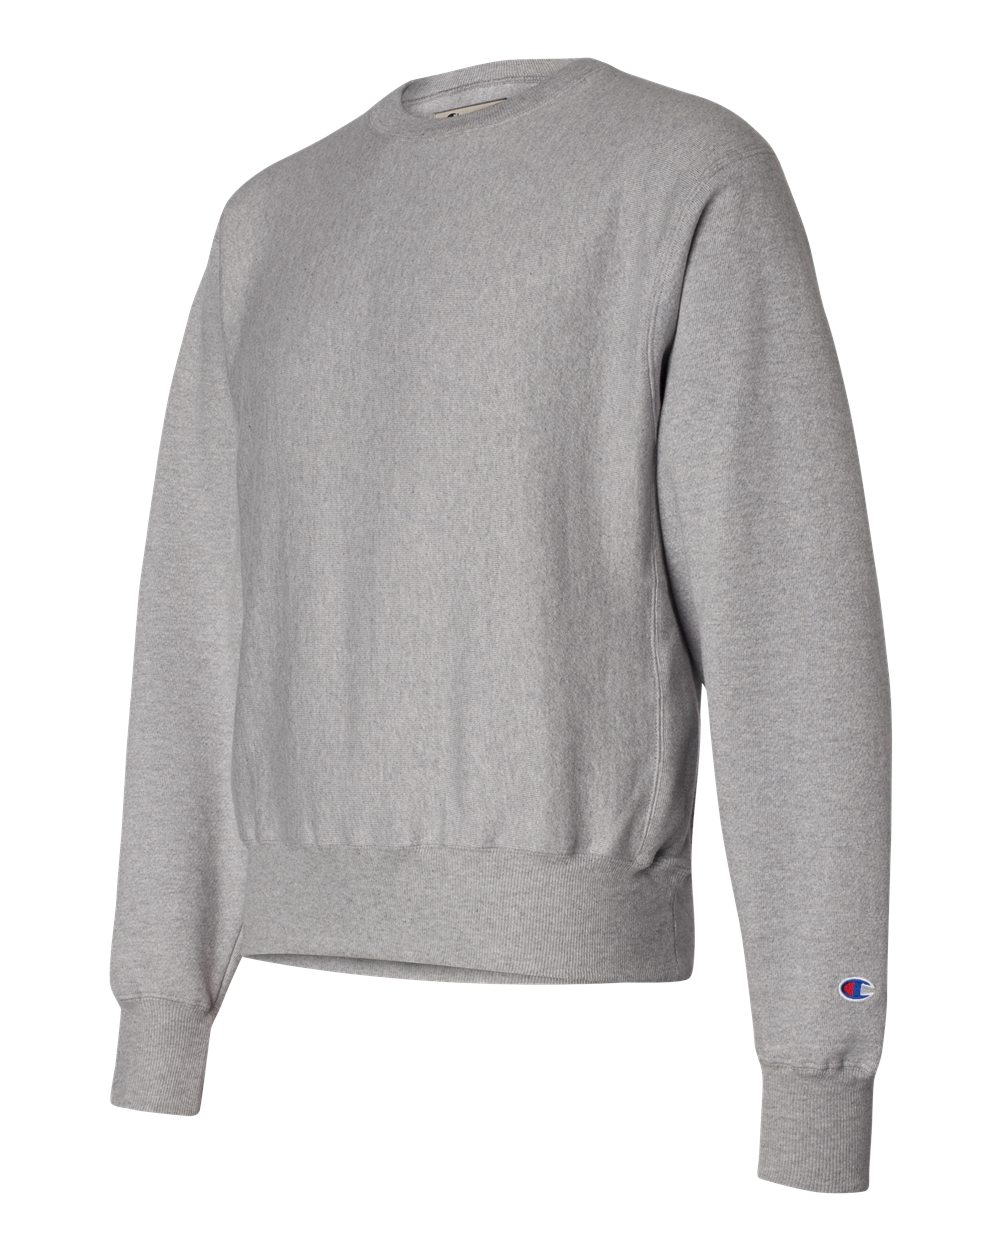 click to view Oxford Gray Heather